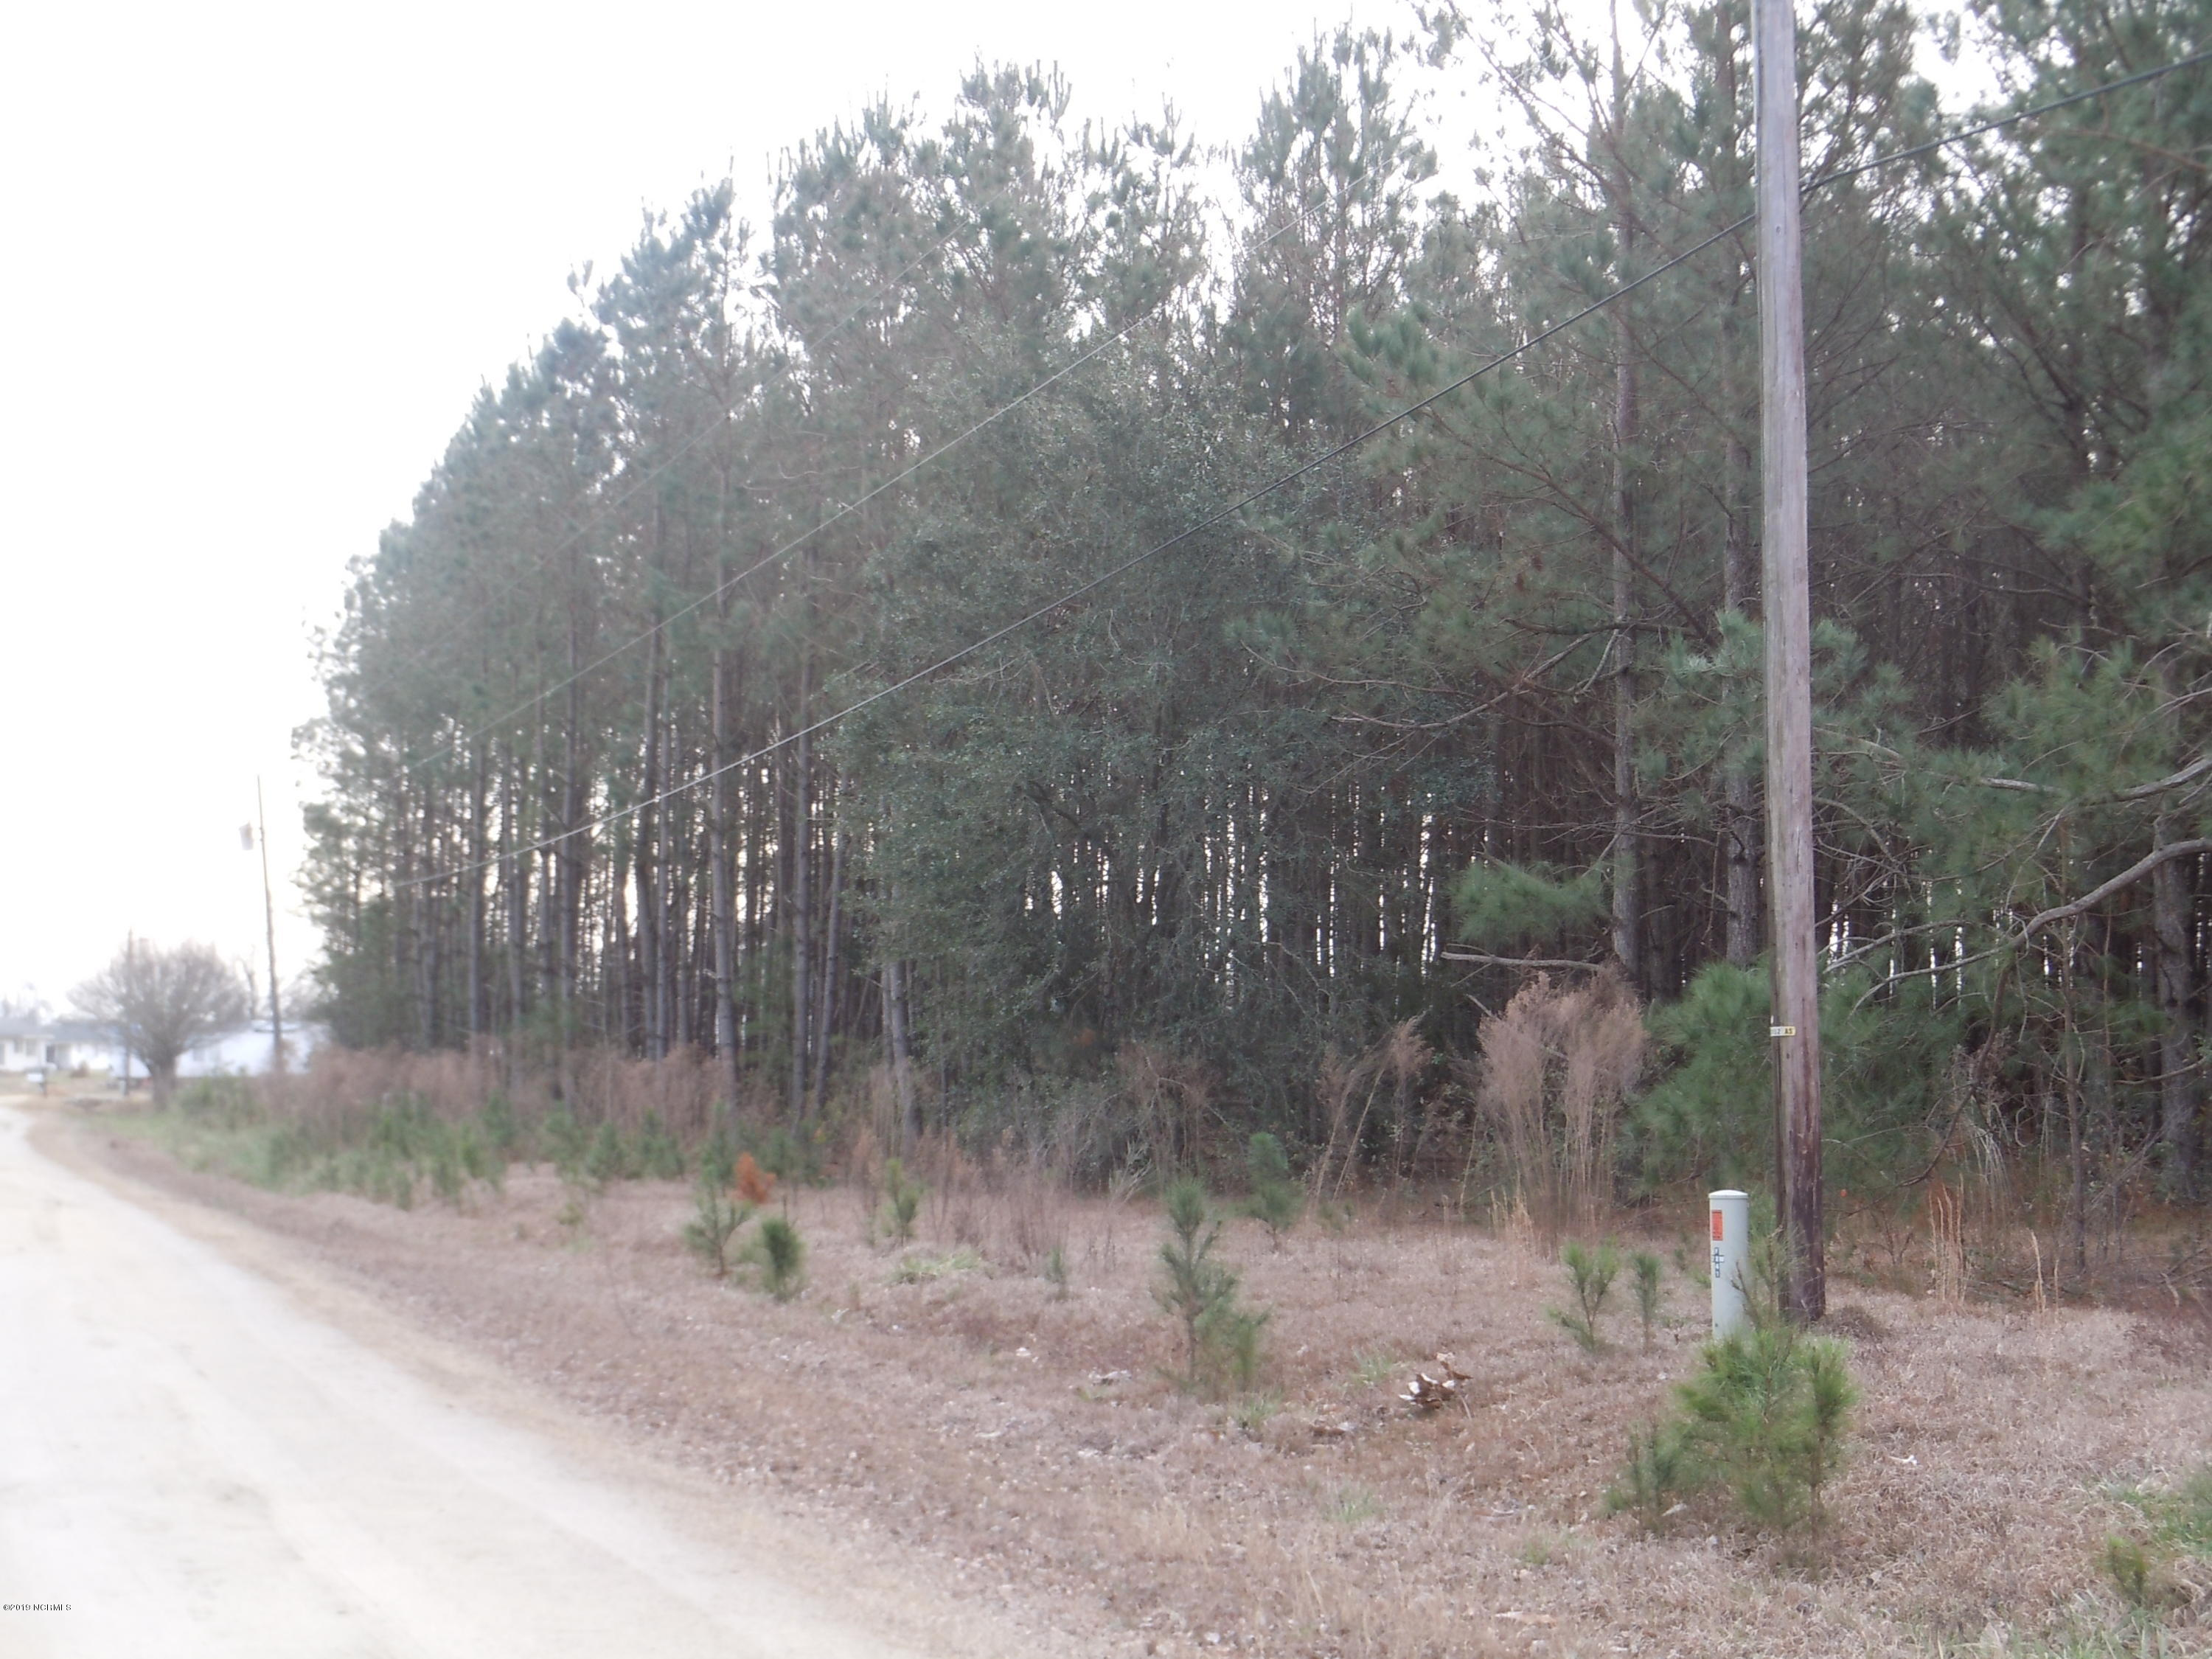 88 Floyd Street, Whiteville, North Carolina 28472, ,Residential land,For sale,Floyd,100150678